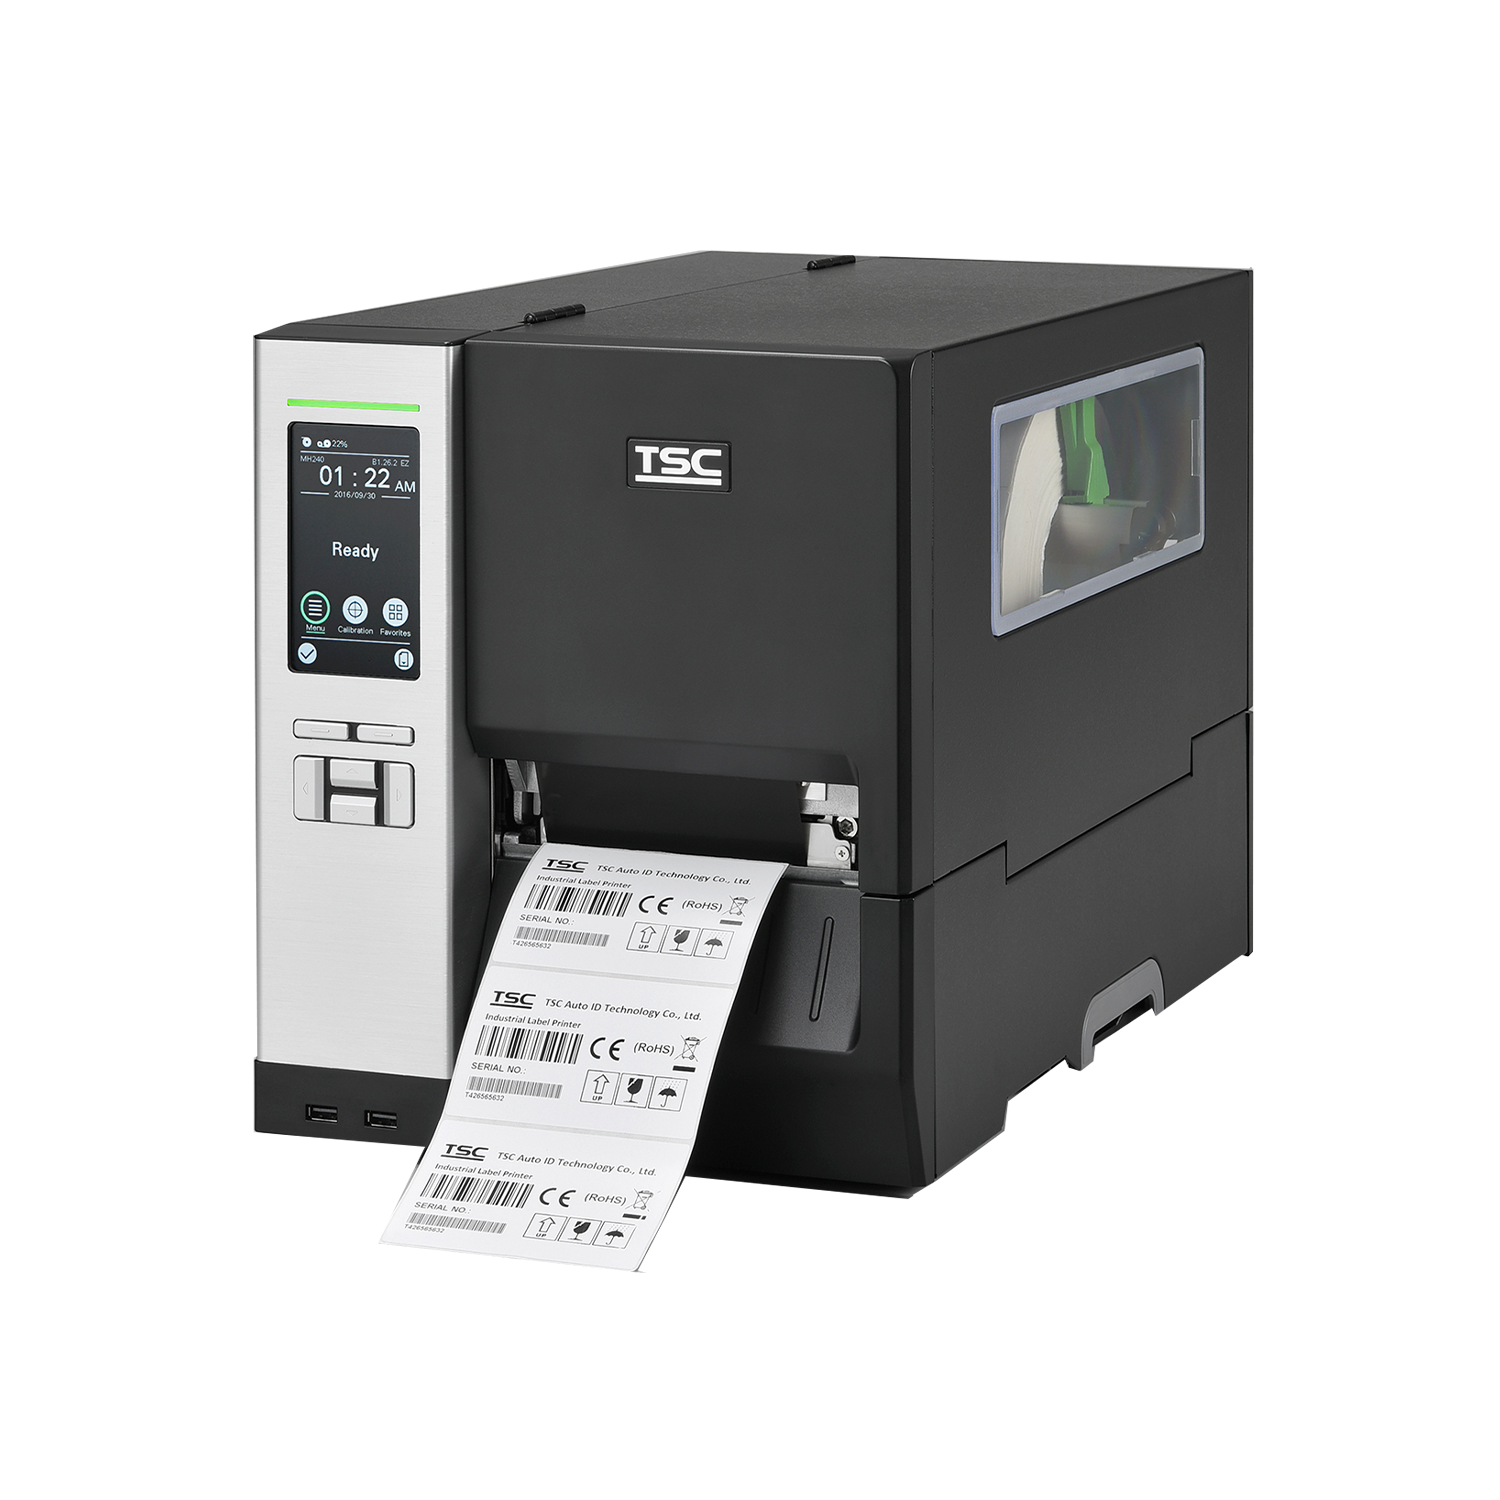 TSC Auto ID MH240 Industrial Barcode Label Printer